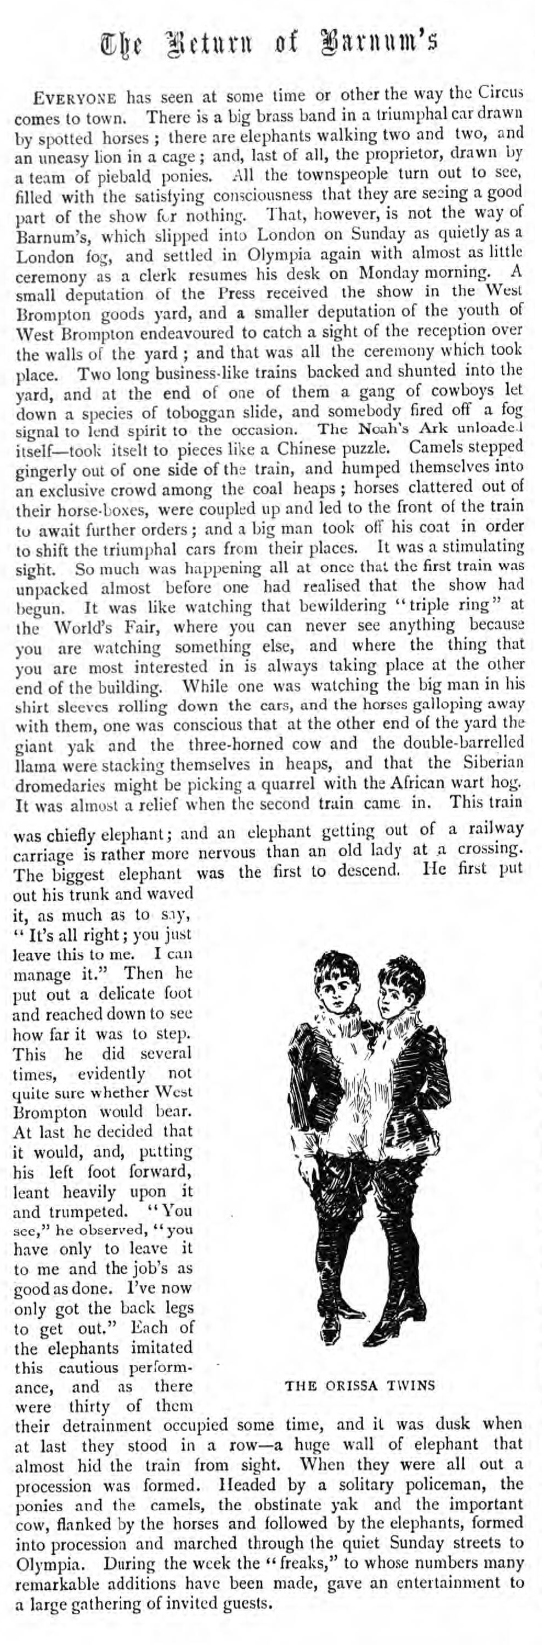 historical newspaper report about barnum